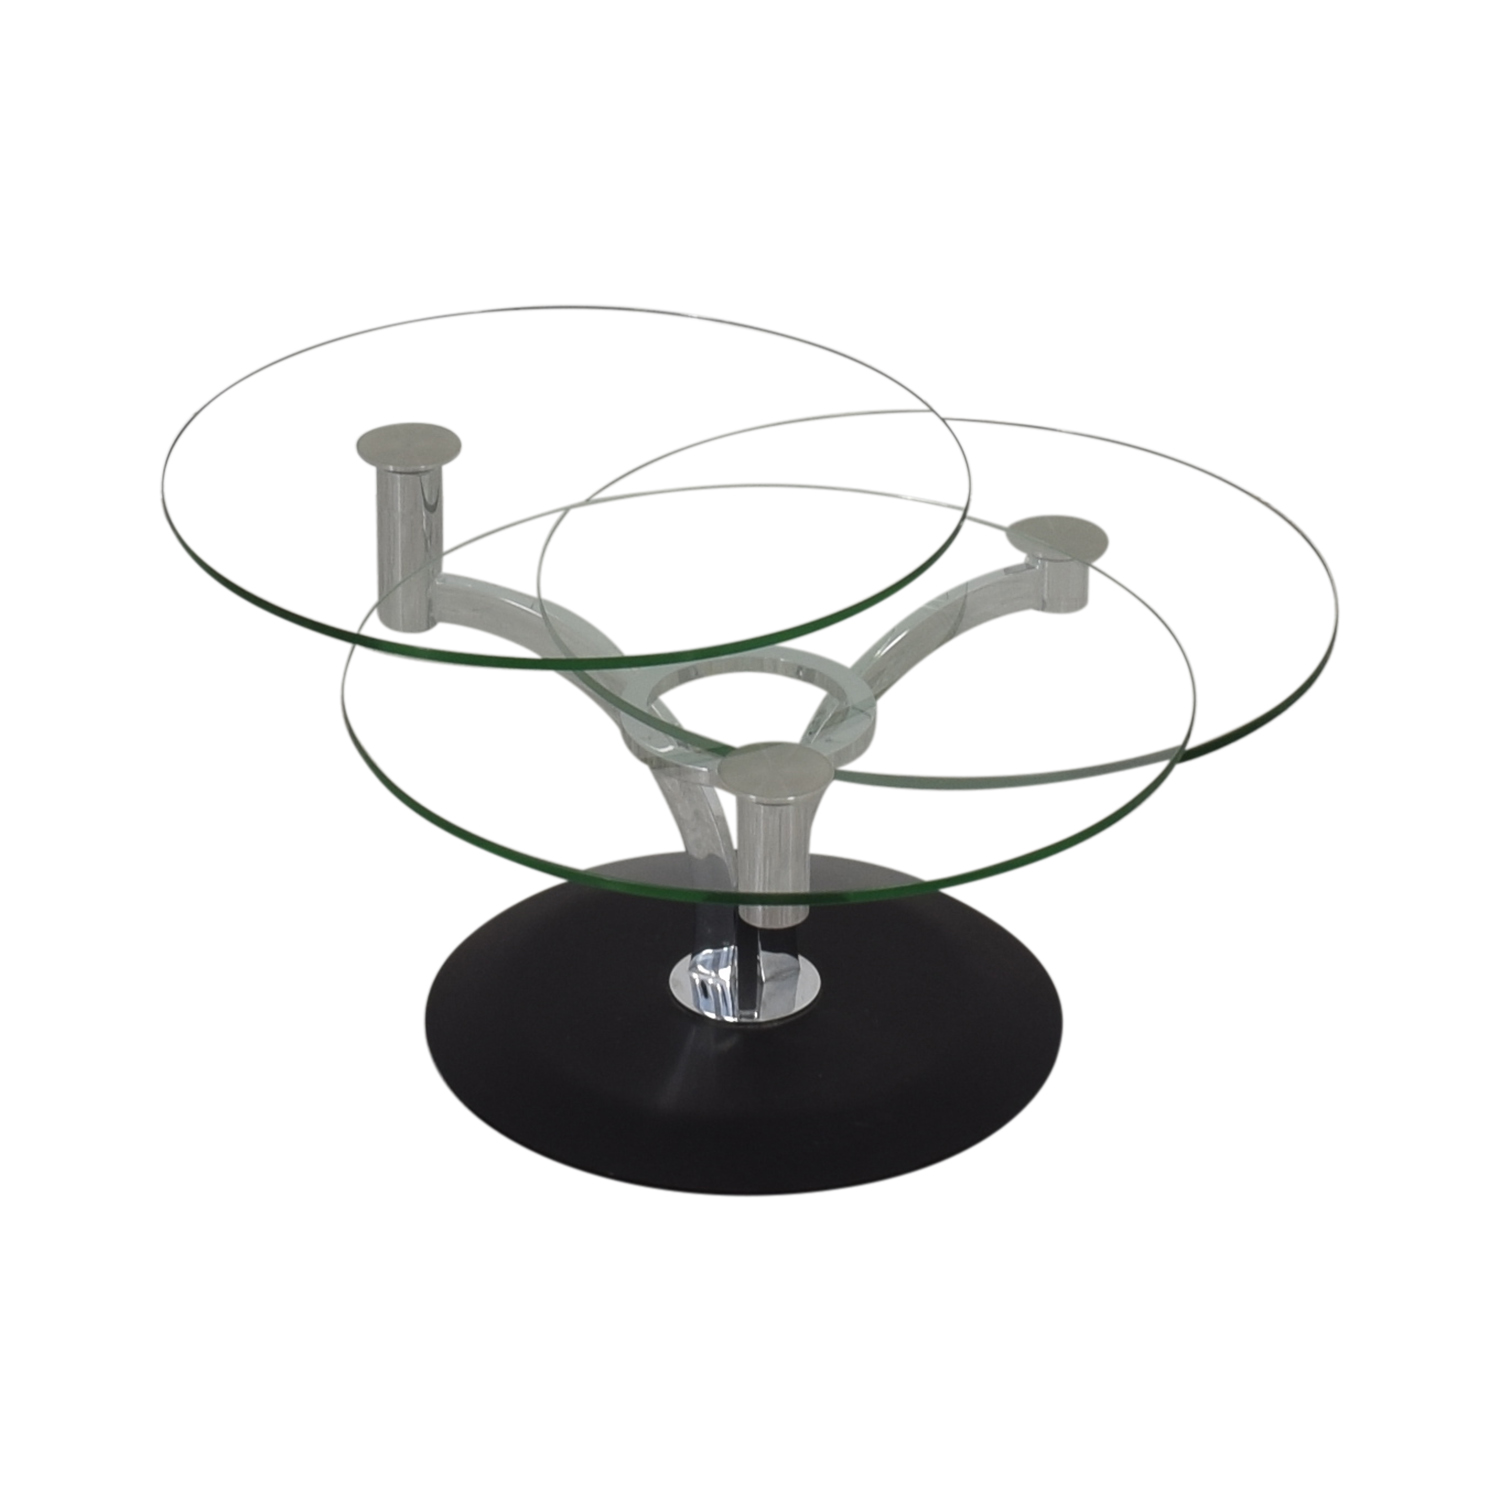 Naos Naos Trillo Glass Coffee Table discount